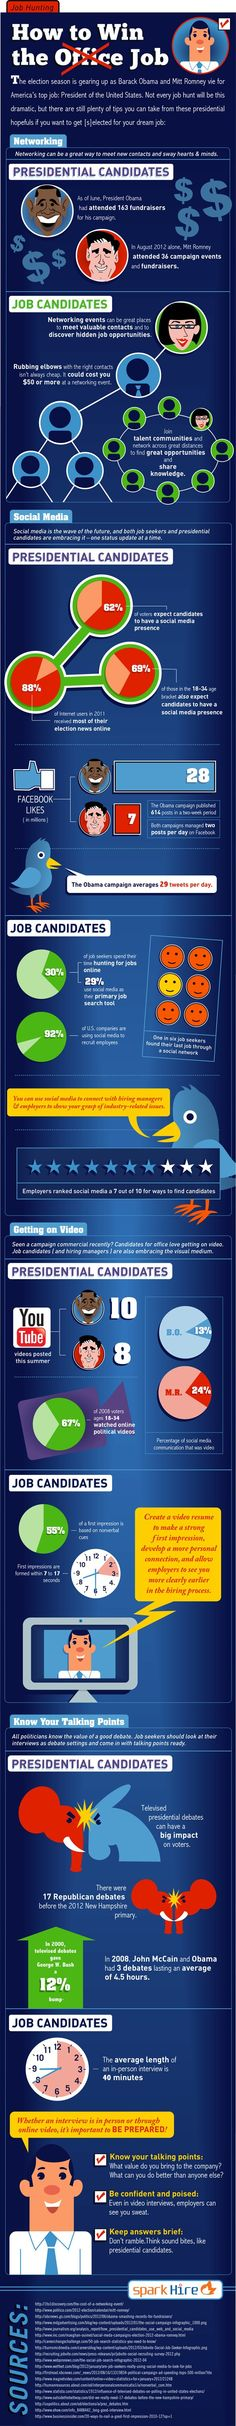 How To Treat Your Job Hunt Like The Presidential Campaign